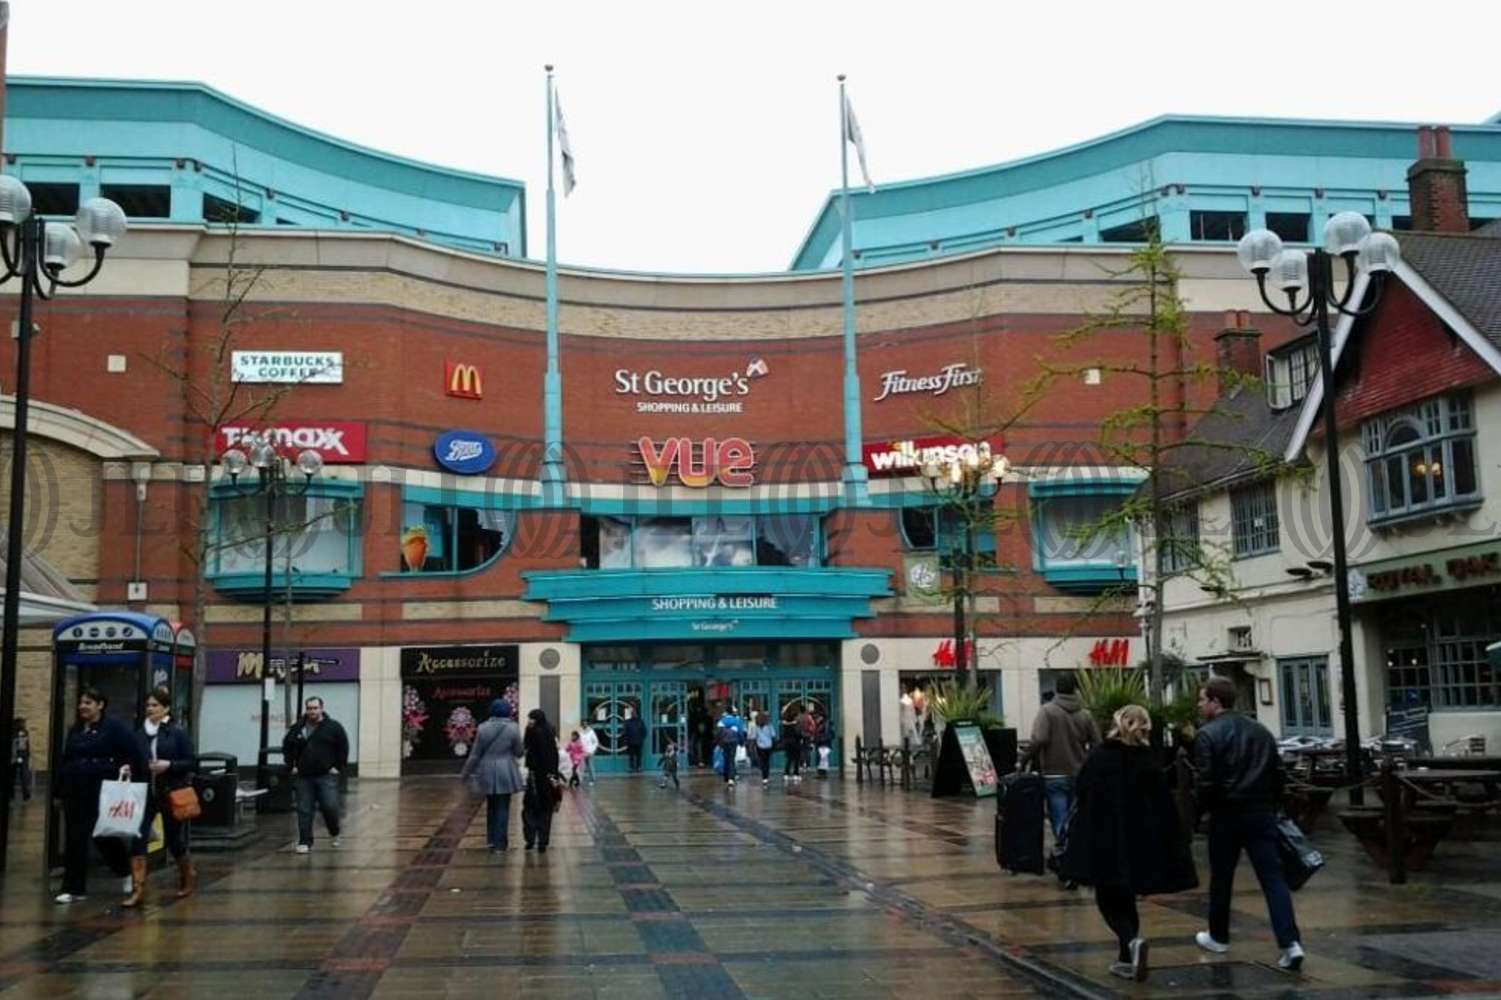 Retail shopping centre Harrow, HA1 1HS - St. Georges Shopping & Leisure Centre